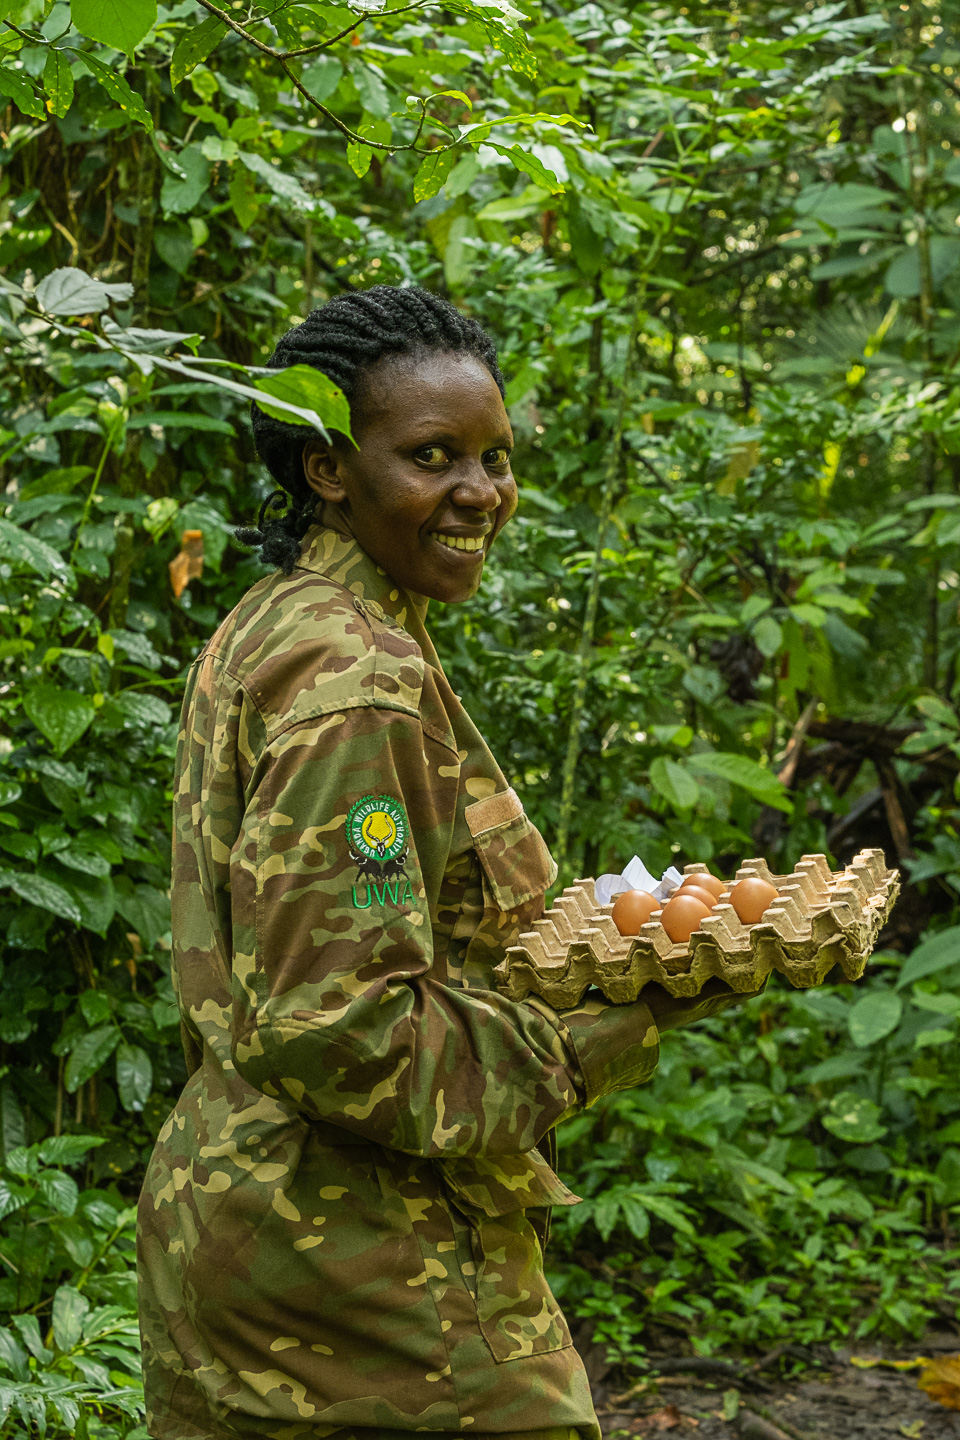 Our guide Harriet leading us through the forest at Semiliki while carrying the precious eggs  image copyright @ triple f photo tours